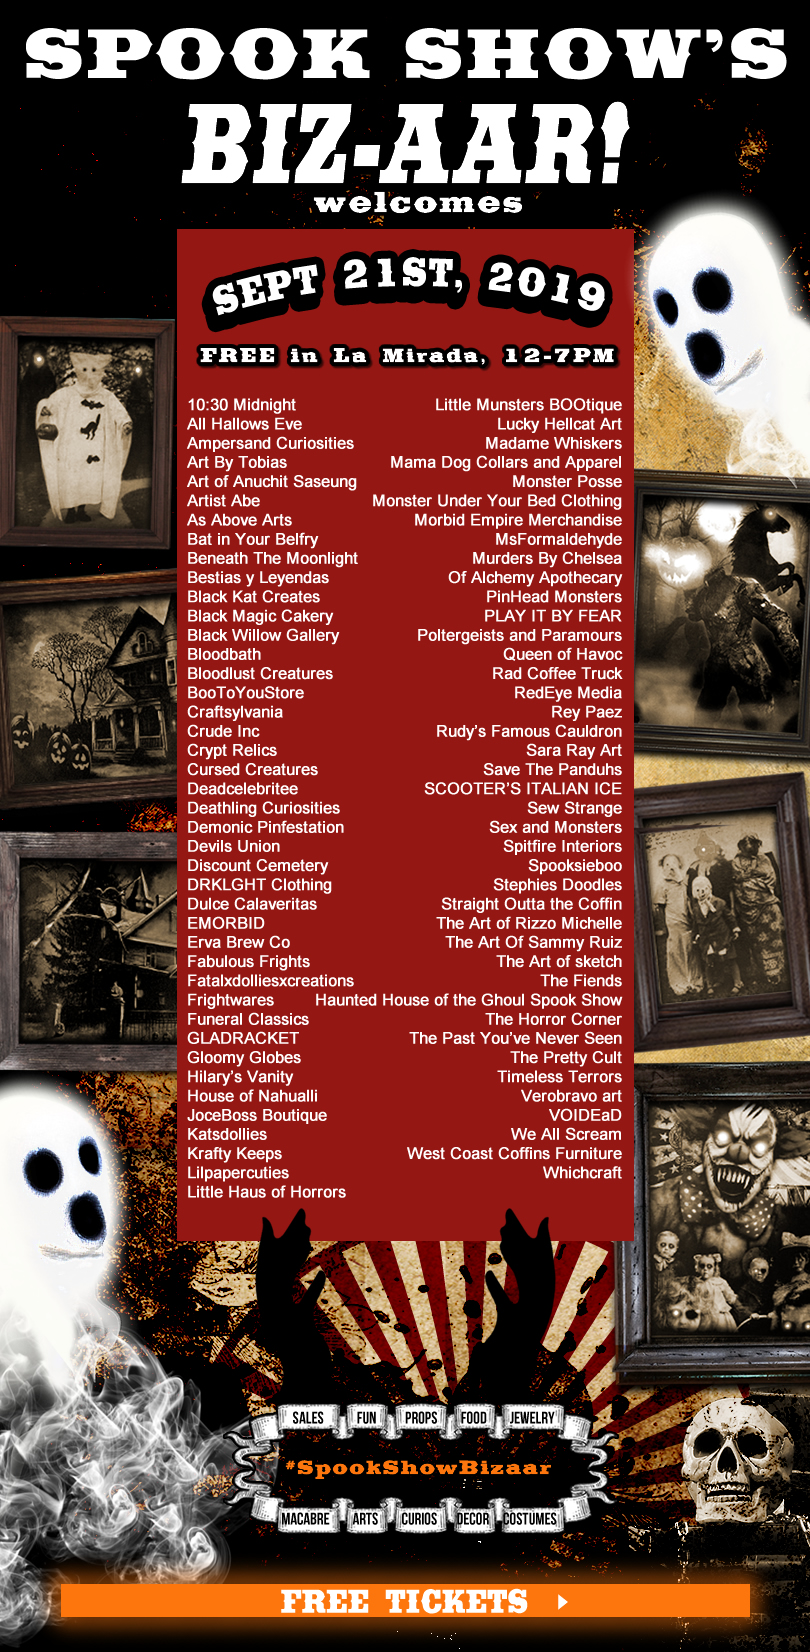 Spook Show's Biz-aar! Confirmed vendors